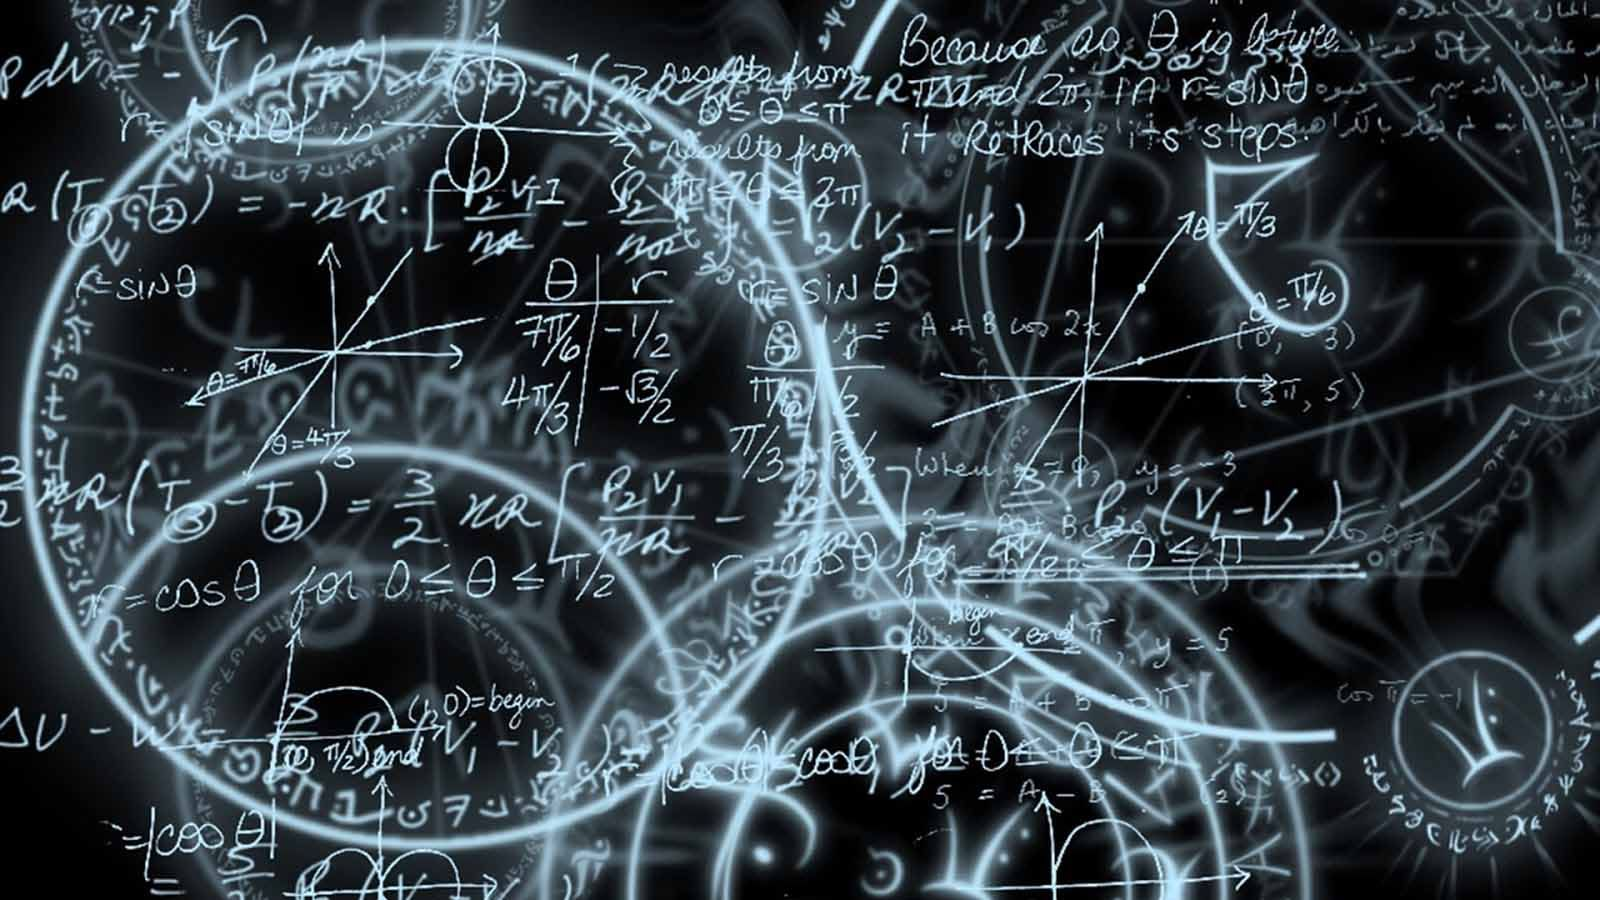 pin by onattaley on backgrounds in 2018 | pinterest | mathematics